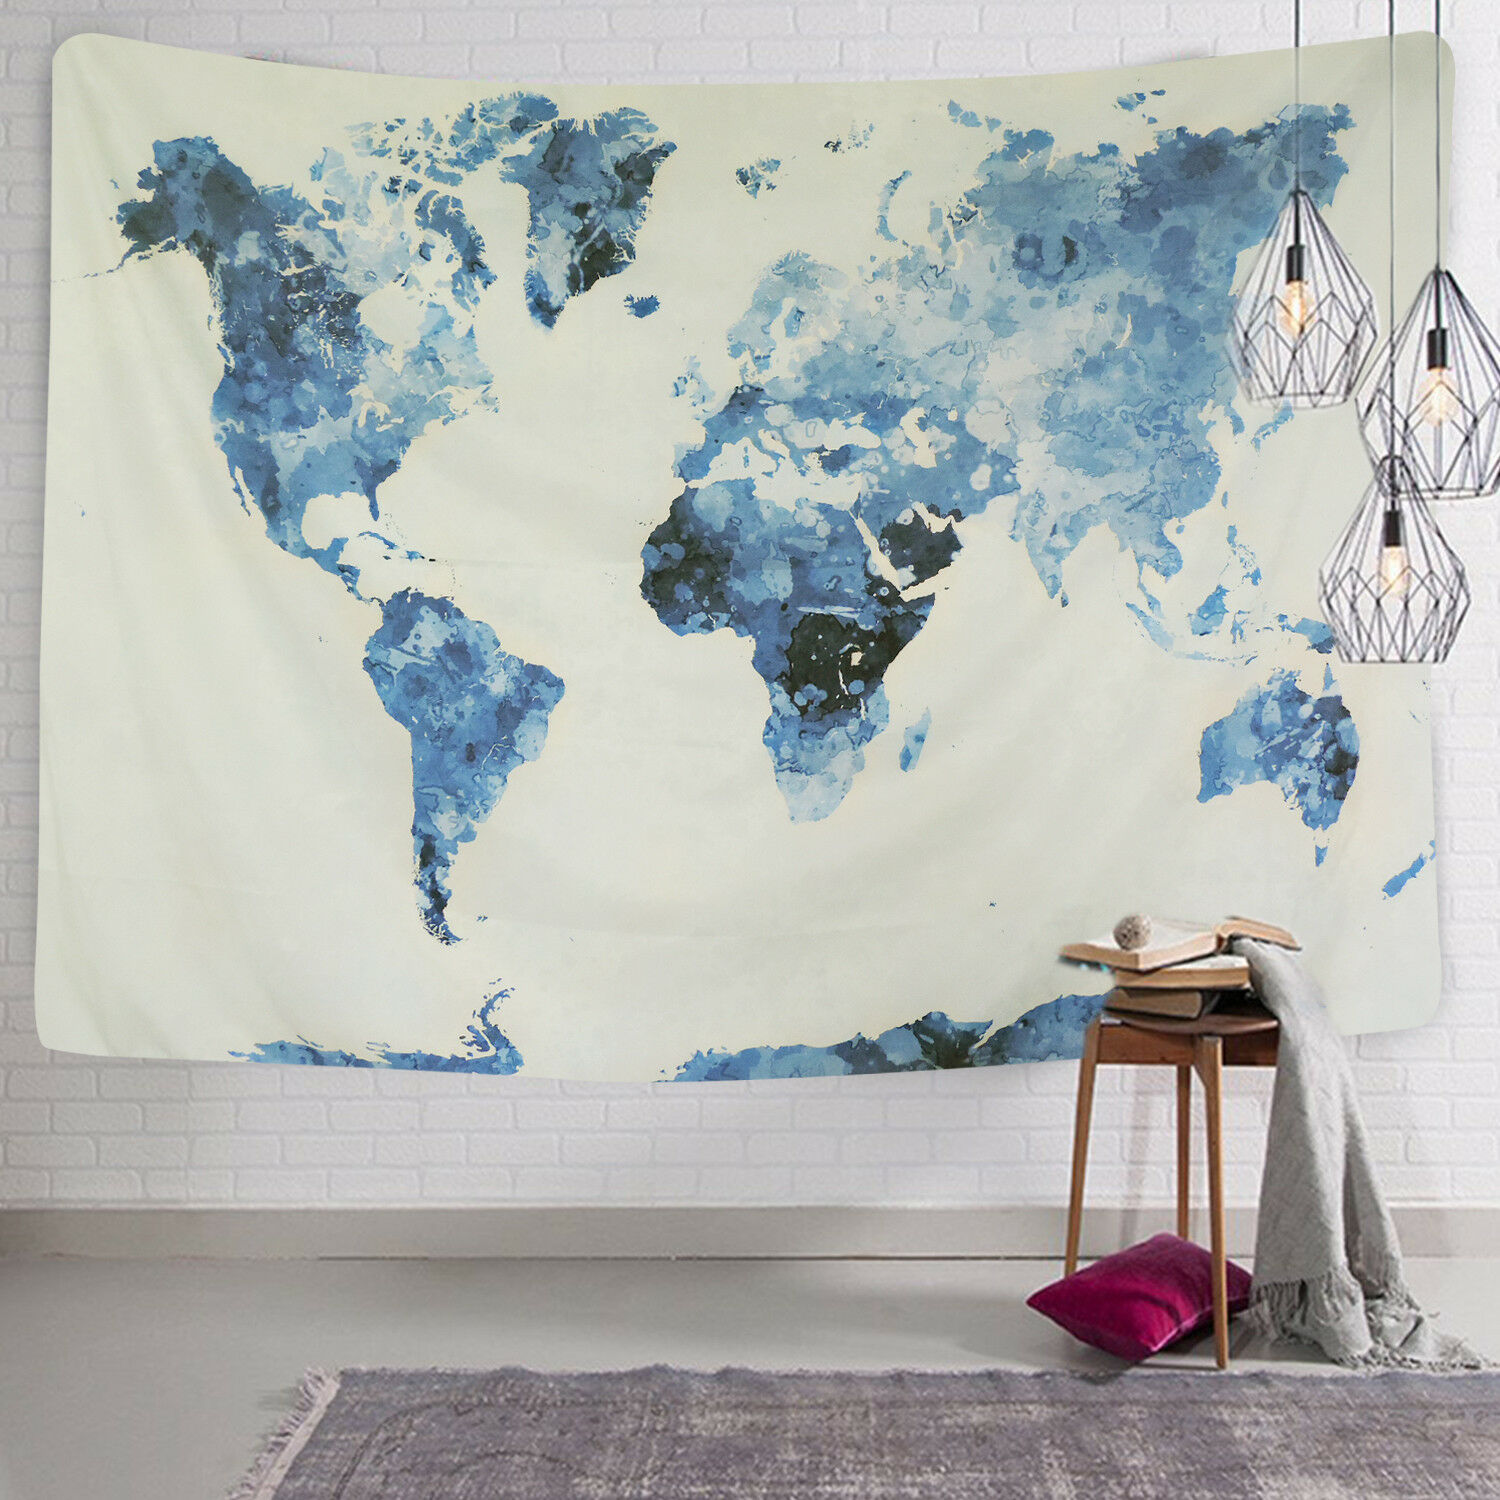 Art world map wall tapestry wall hanging tapestry living room art world map wall tapestry wall hanging tapestry living room bedspread decor us 1 of 6free shipping gumiabroncs Gallery